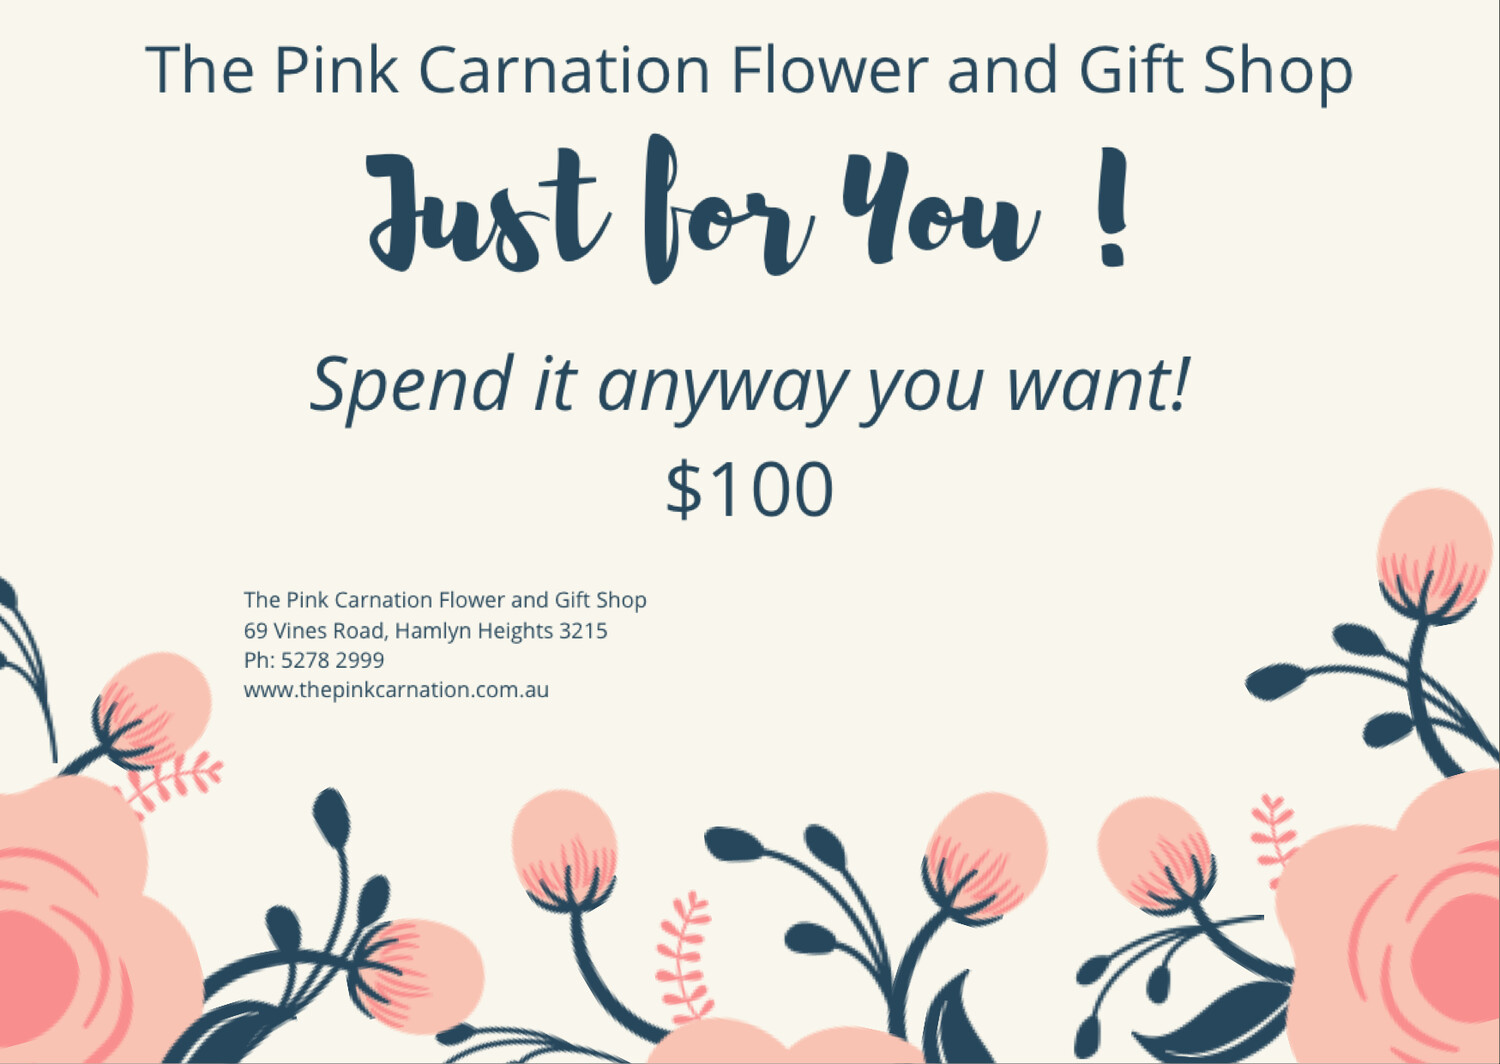 The Pink Carnation Flower and Gift Shop - $100 Voucher